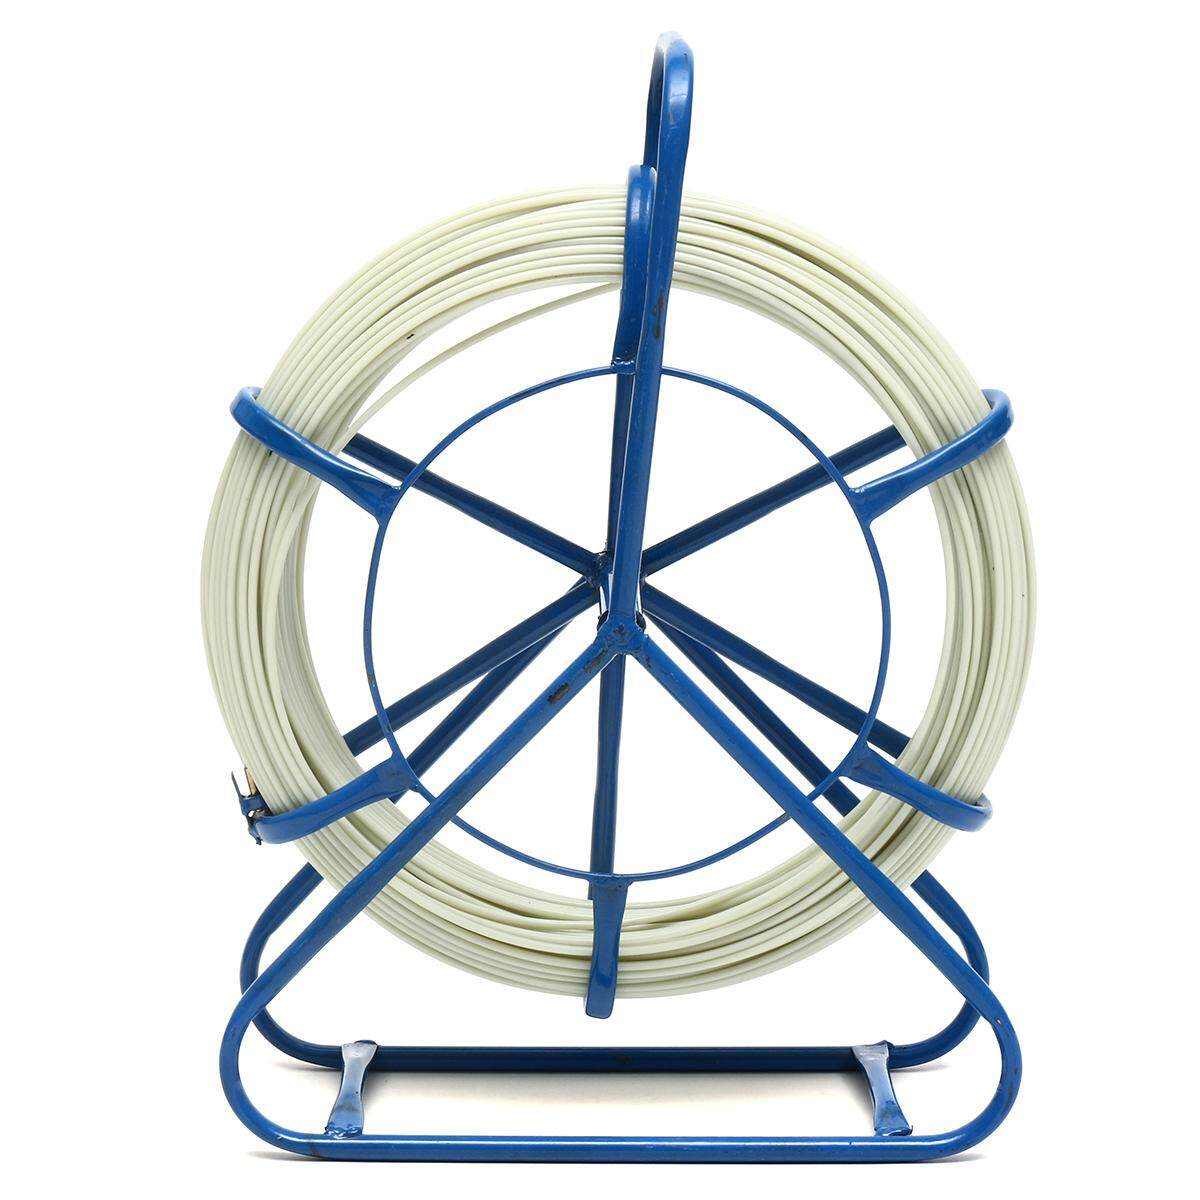 The Price Of Fiberglass Duct Rodder Fish Tape Cable Running Rod Wire ...